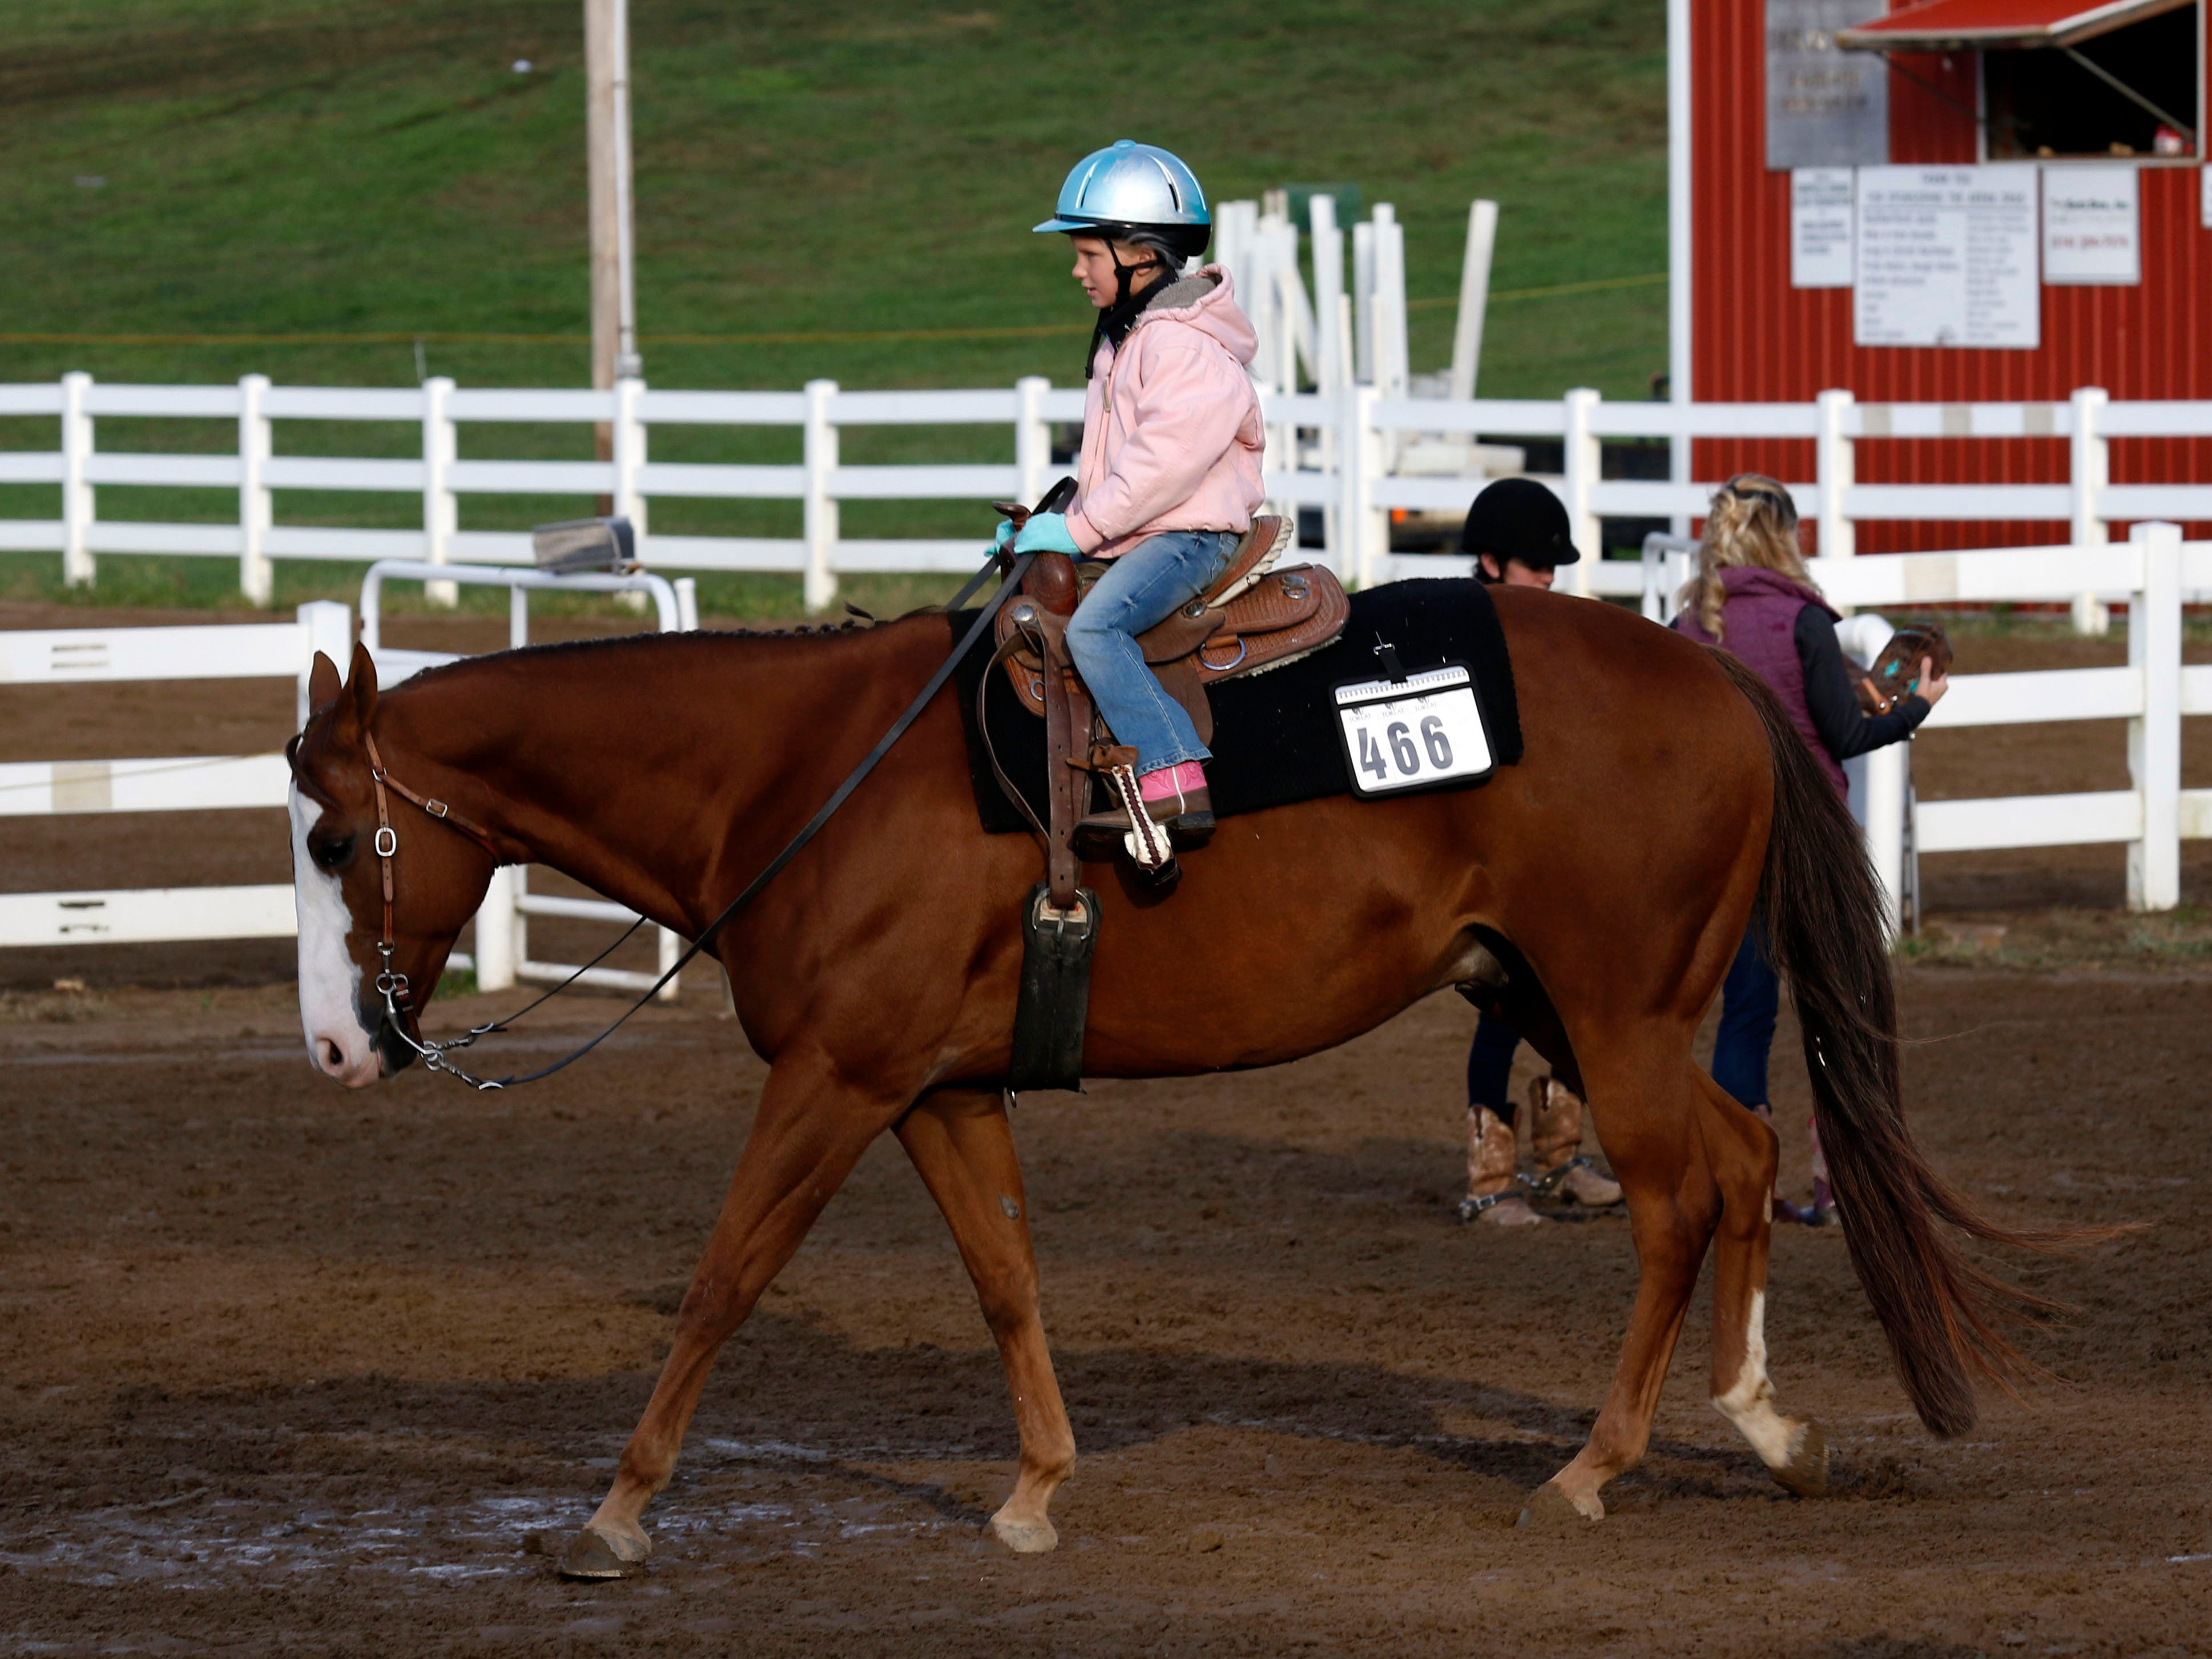 The horse show continued Friday, Oct. 12, 2018, at the Fairfield County Fair in Lancaster.